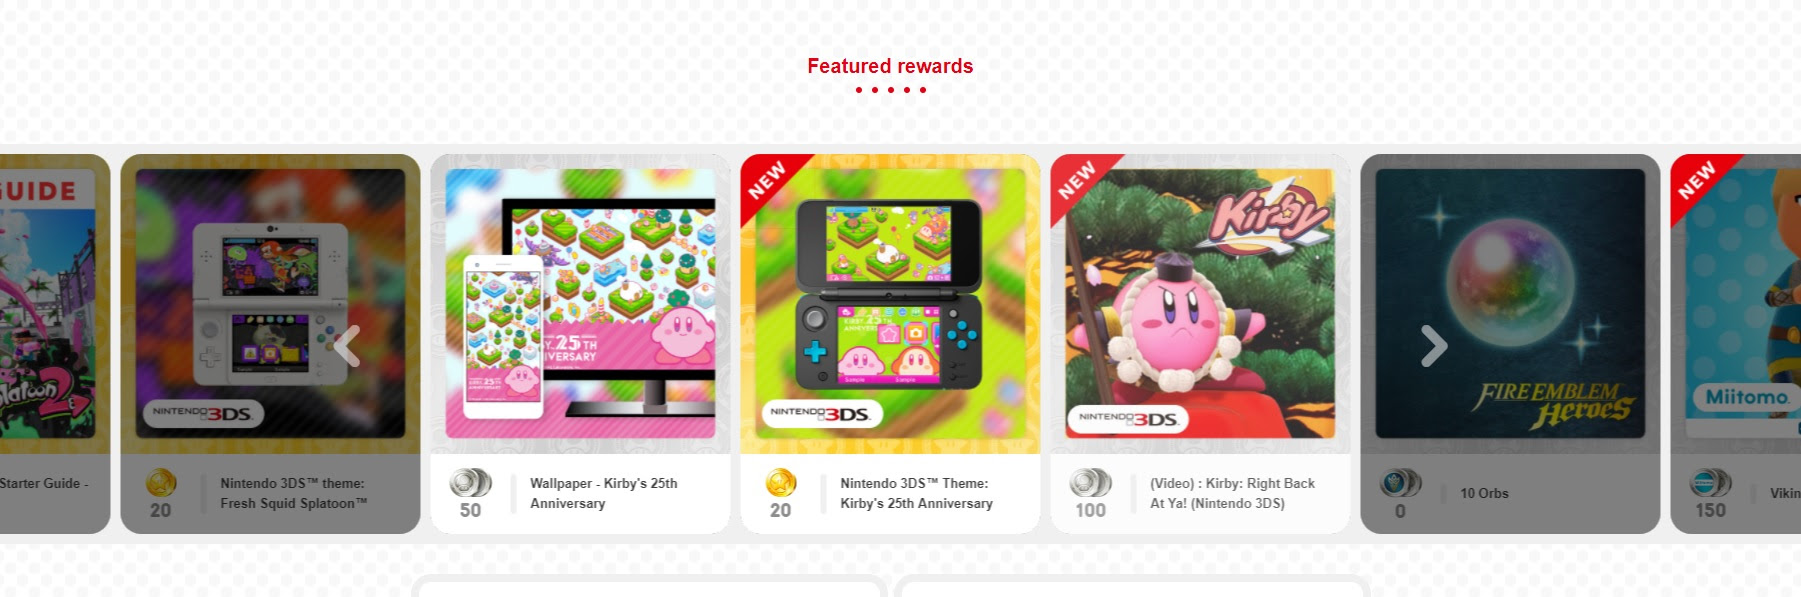 New Star Fox and Kirby rewards pop up on My Nintendo screenshot